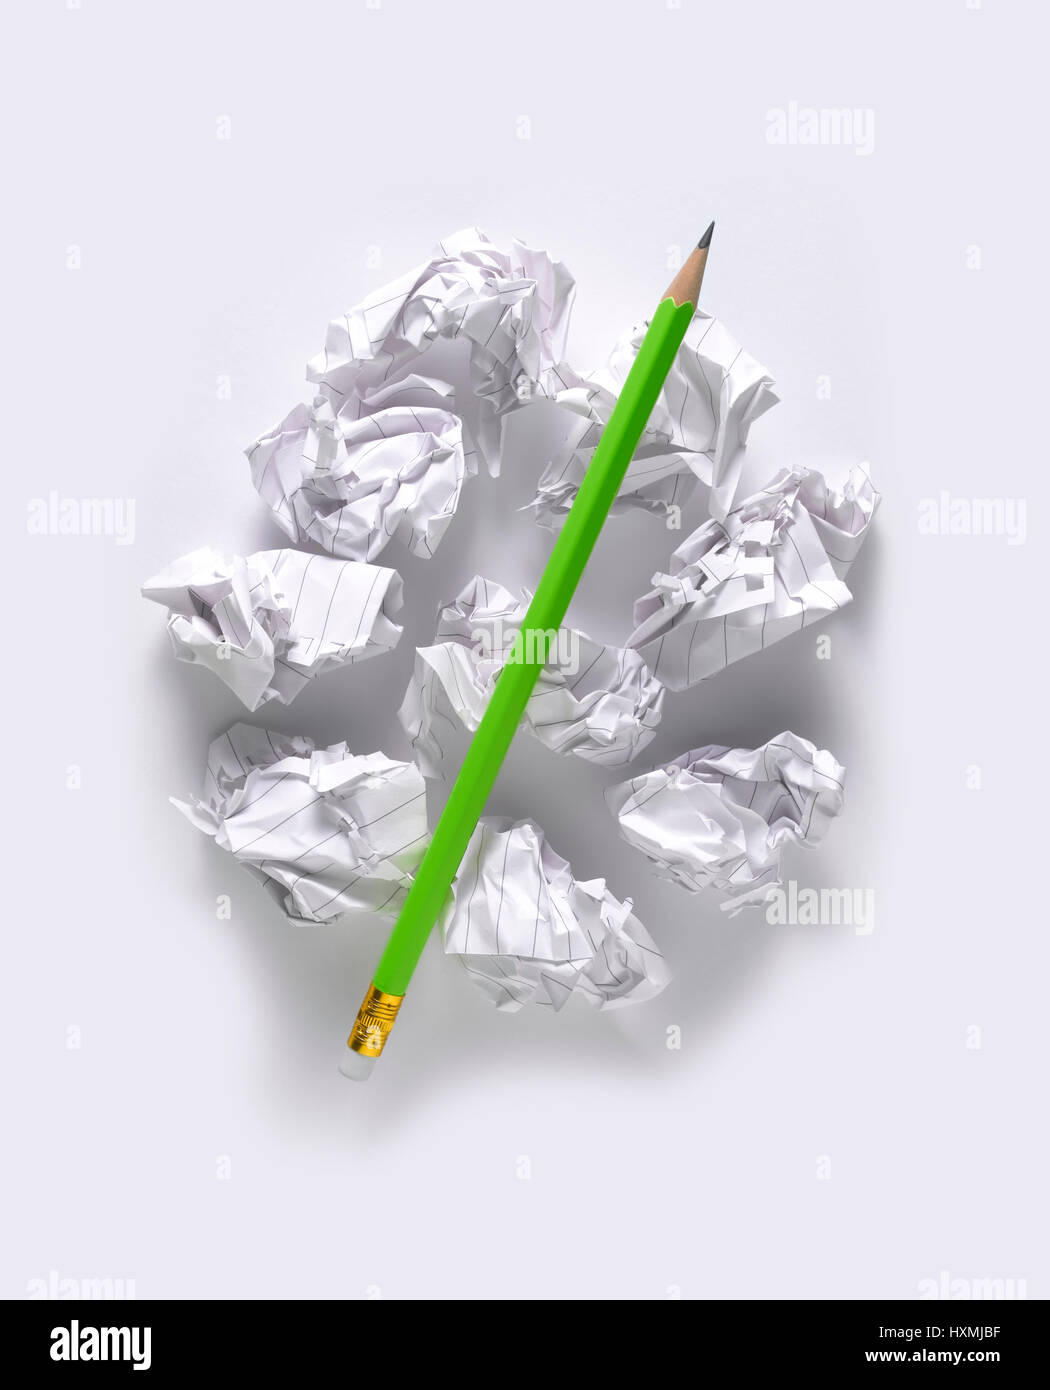 gren pencil isolated on scrunched paper Stock Photo